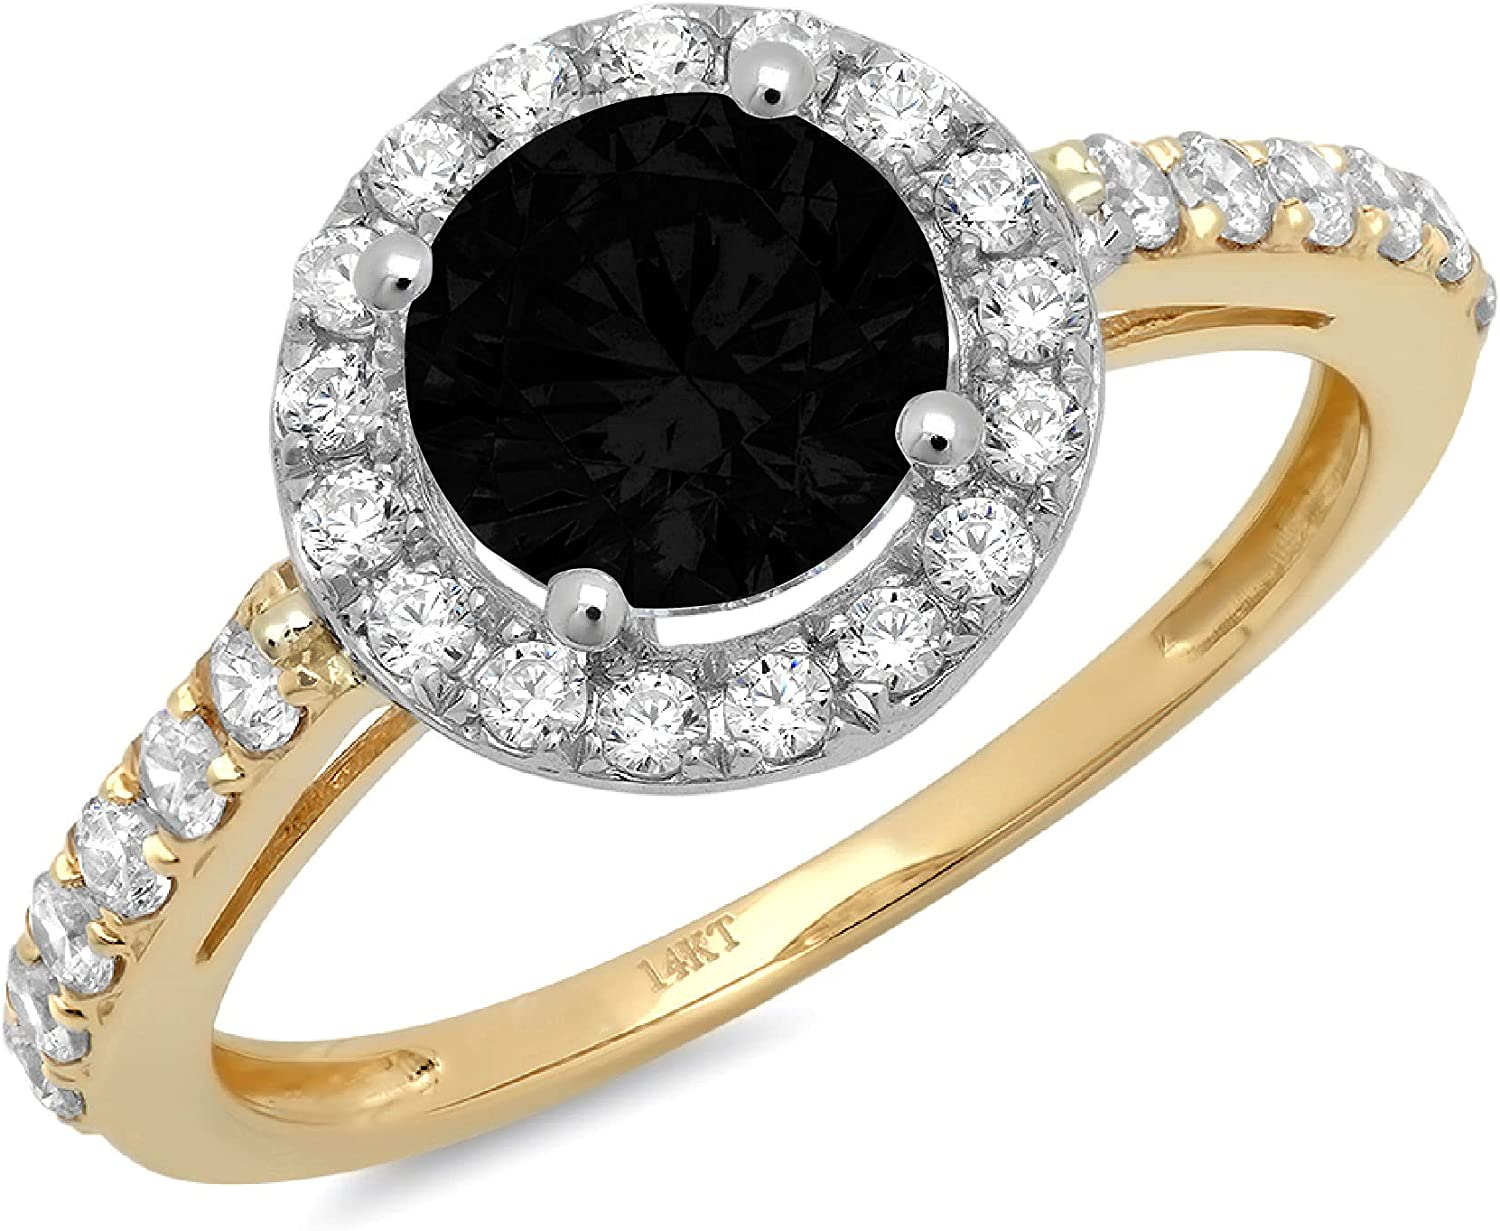 Clara Pucci 2.5 ct Round Cut Solitaire Accent Halo Stunning Genuine Flawless Natural Black Onyx Gem Designer Modern Statement Ring Solid 18K Yellow & White Gold